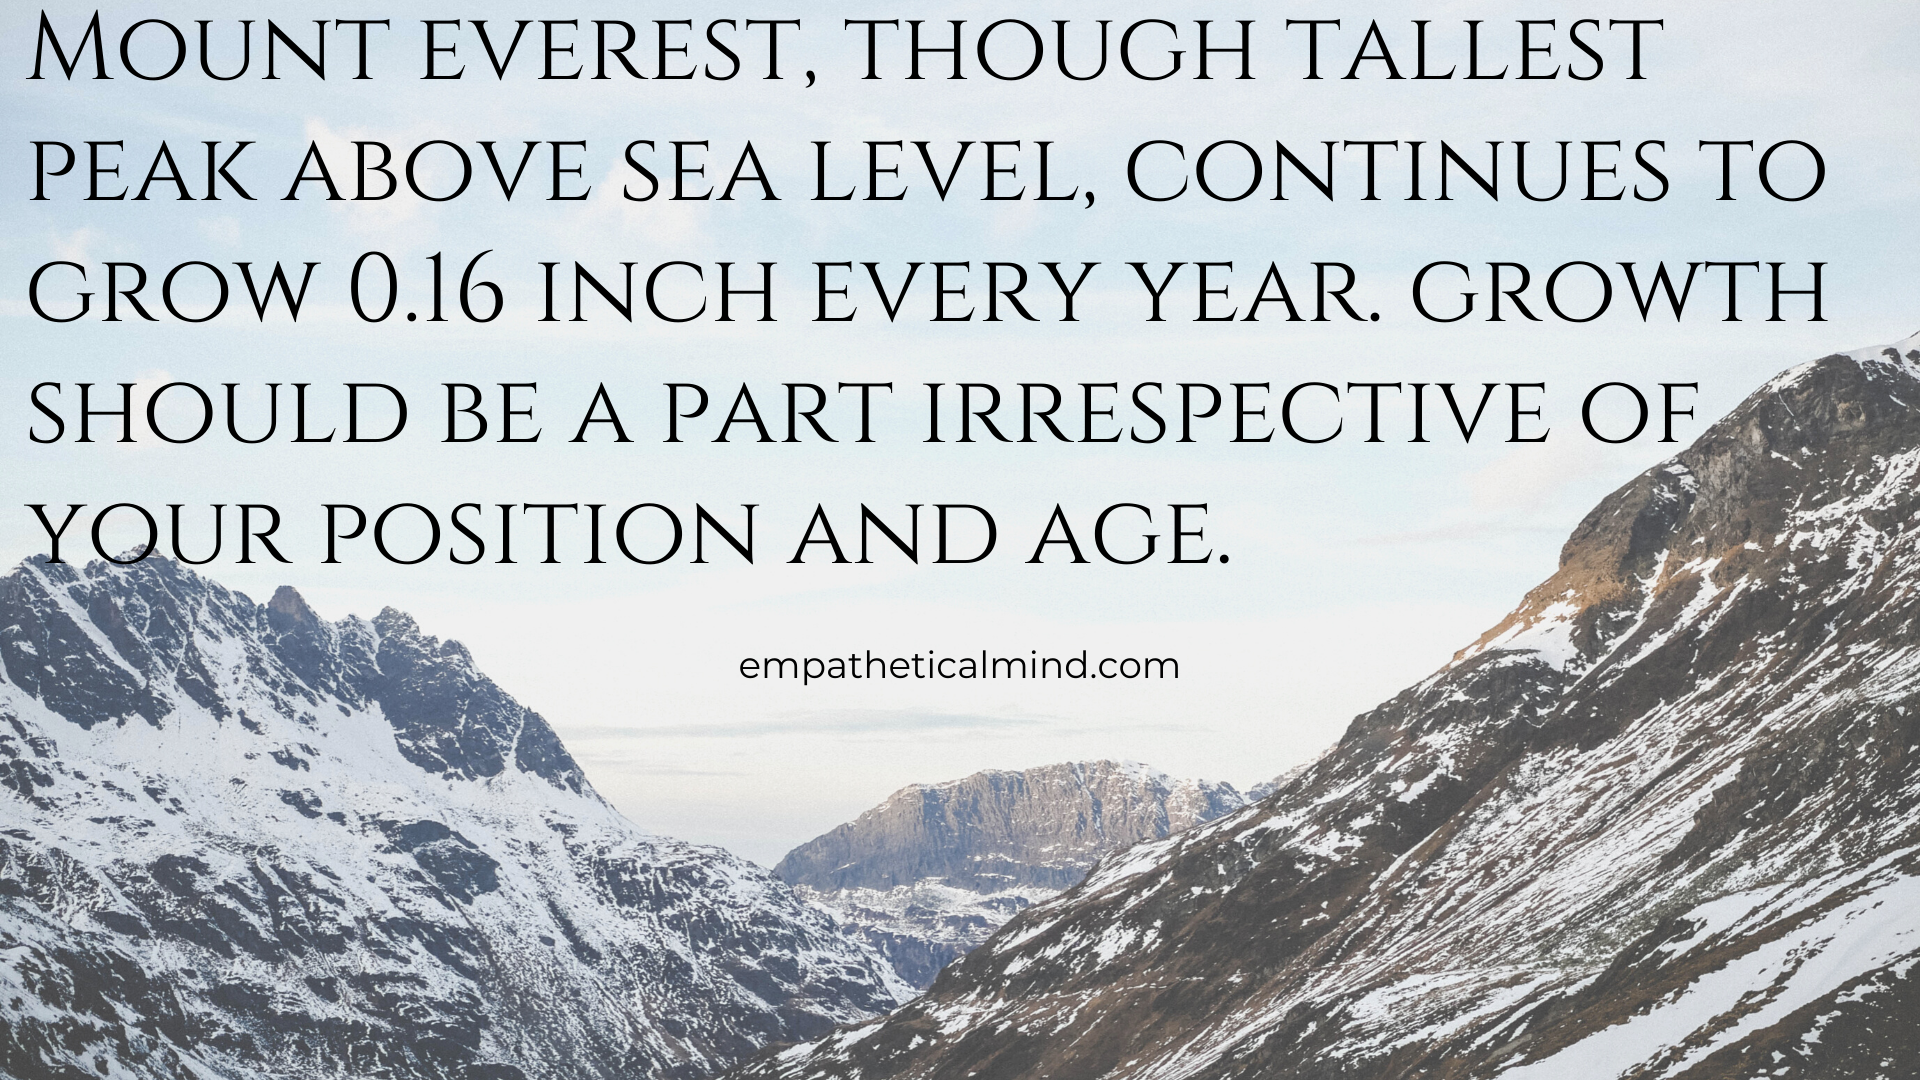 Mount everest, though tallest peak above sea level, continues to grow 0.16 inch every year. Growth should be a part irrespective of your position and age.